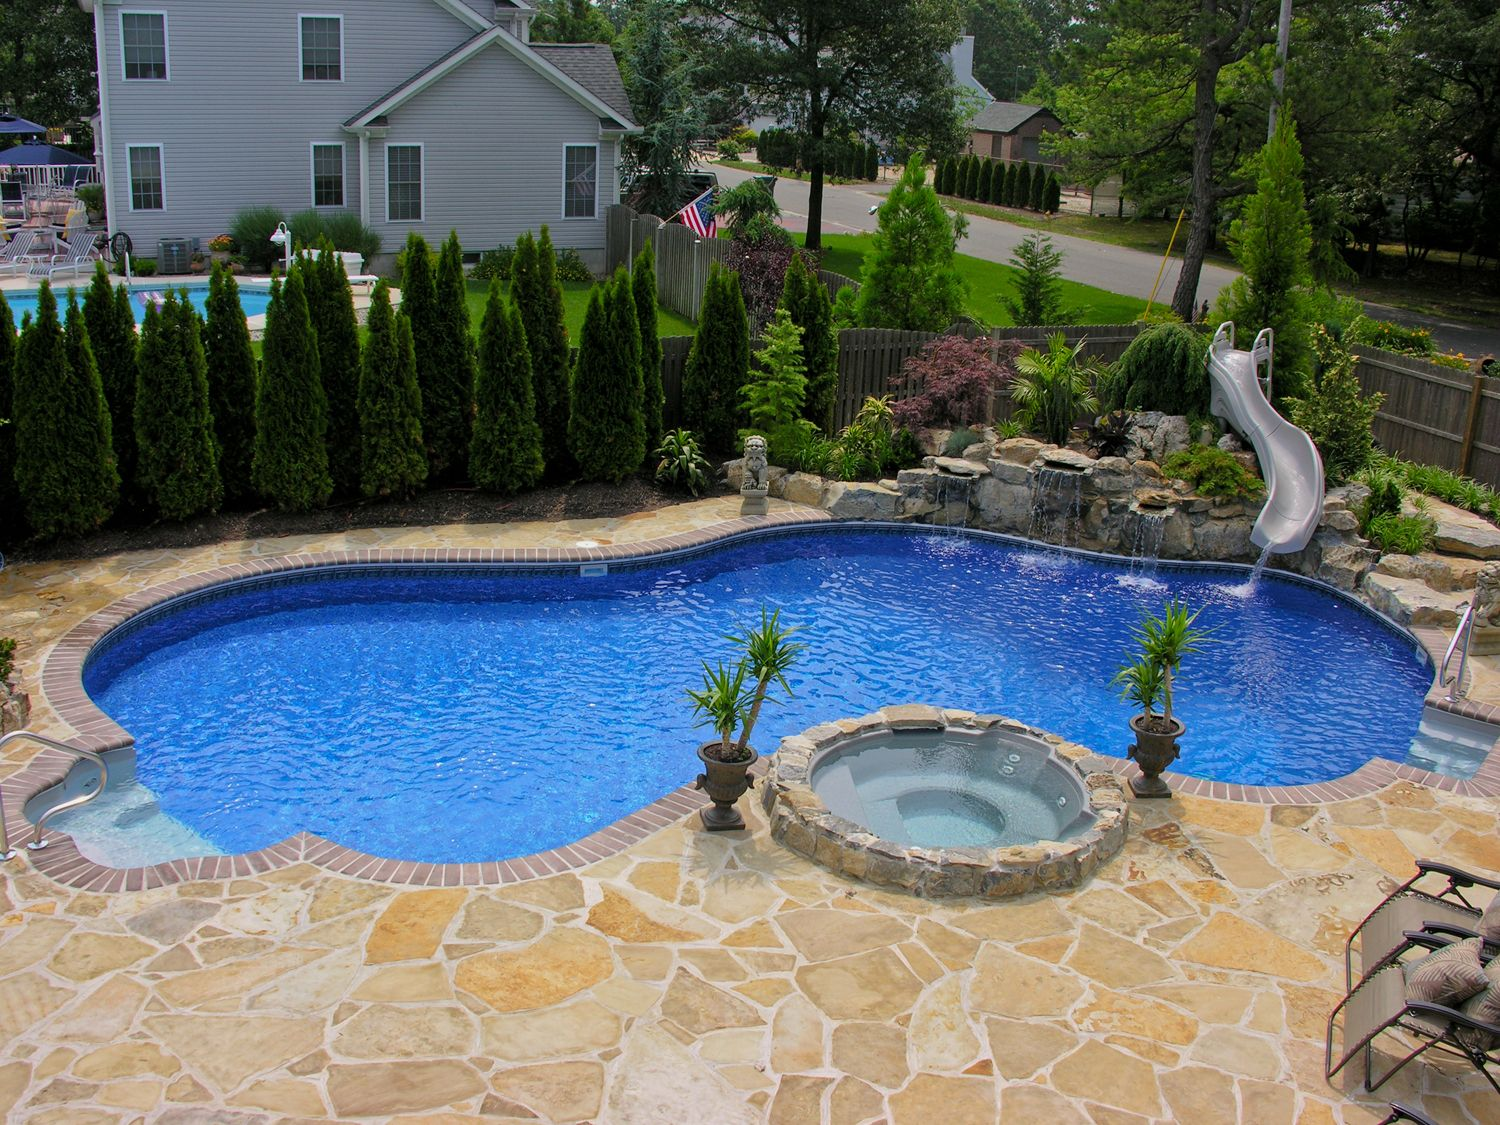 Pool town nj inground swimming pools with spa and slide for Pool design with slide